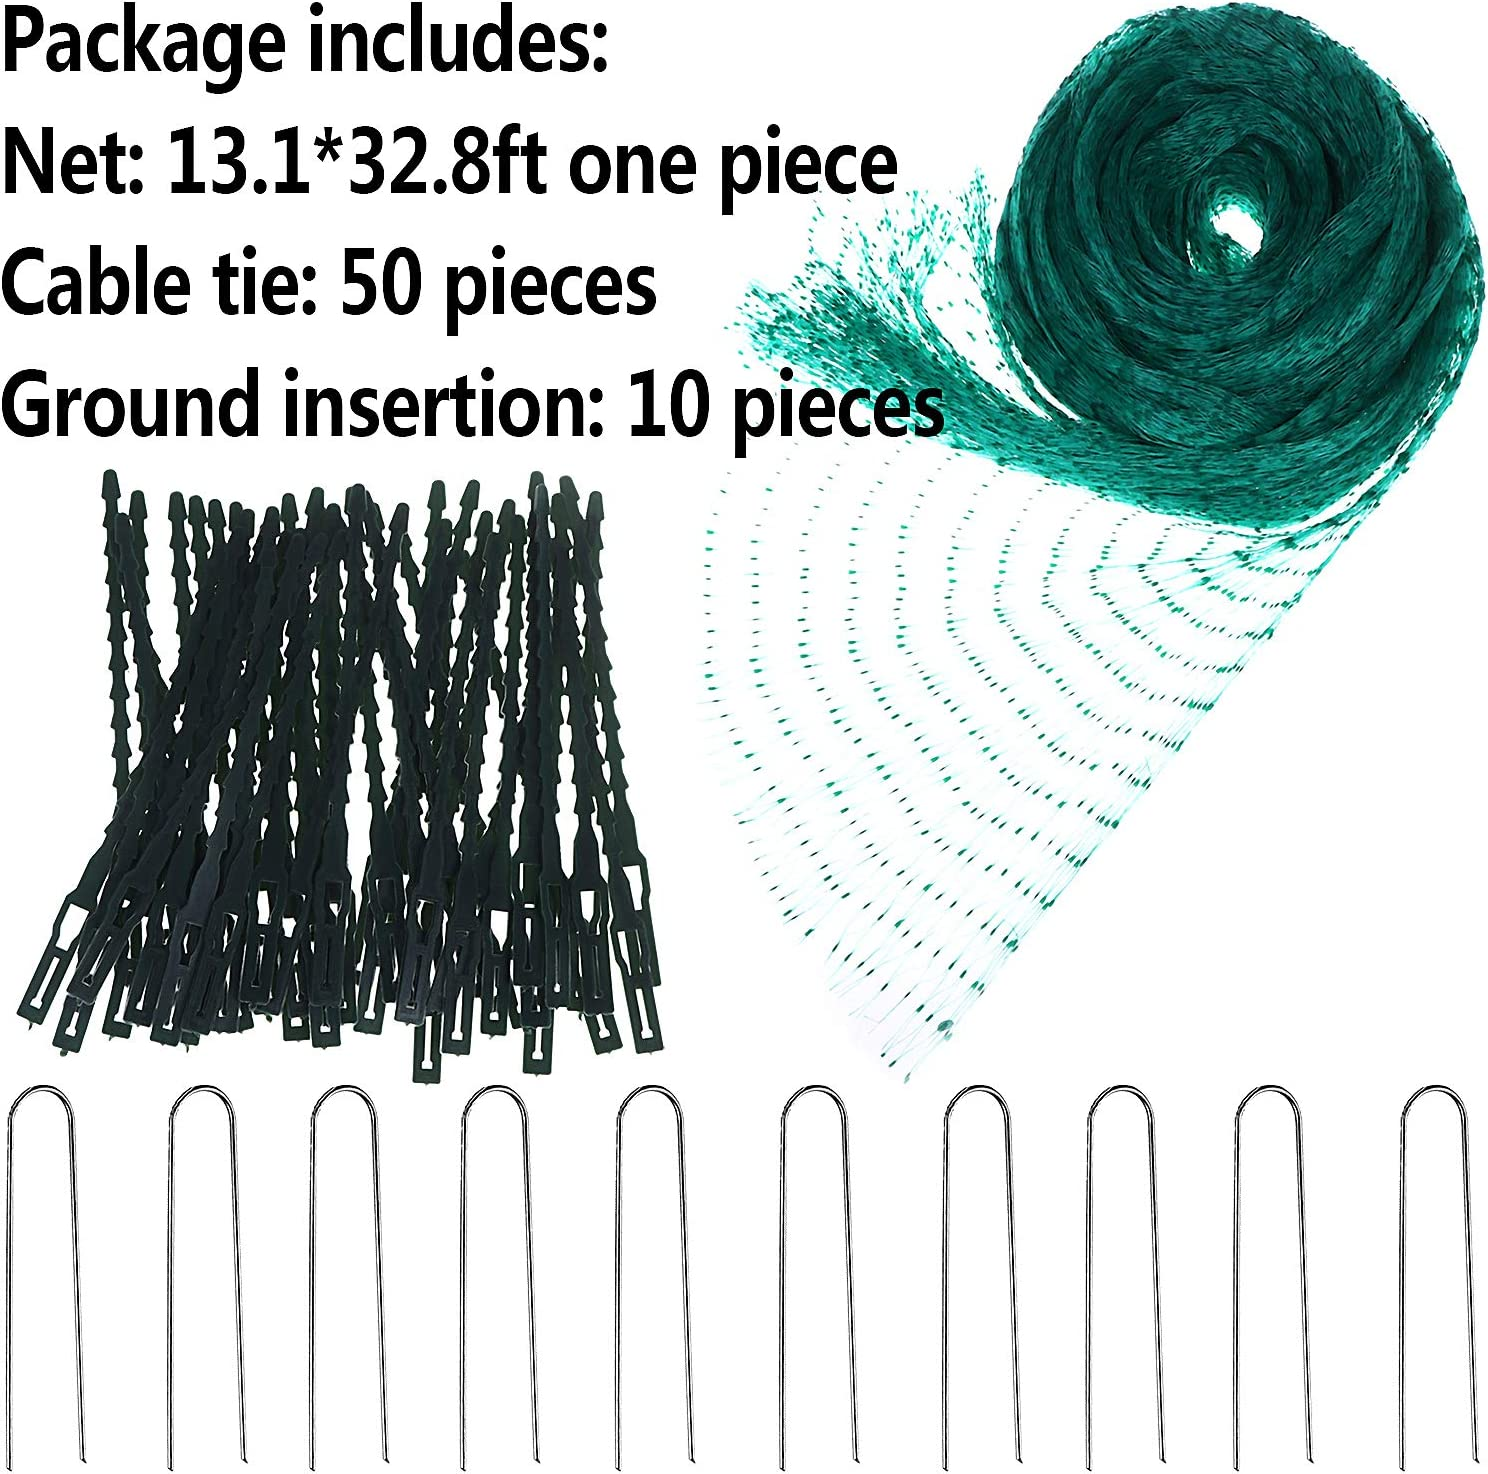 LOCOLO 13.1 x 32.8 Ft Anti Bird Protection Net with 50Pcs Cable Ties and 10Pcs U-Shaped Garden Pegs Green Bird Netting Protection for Plant